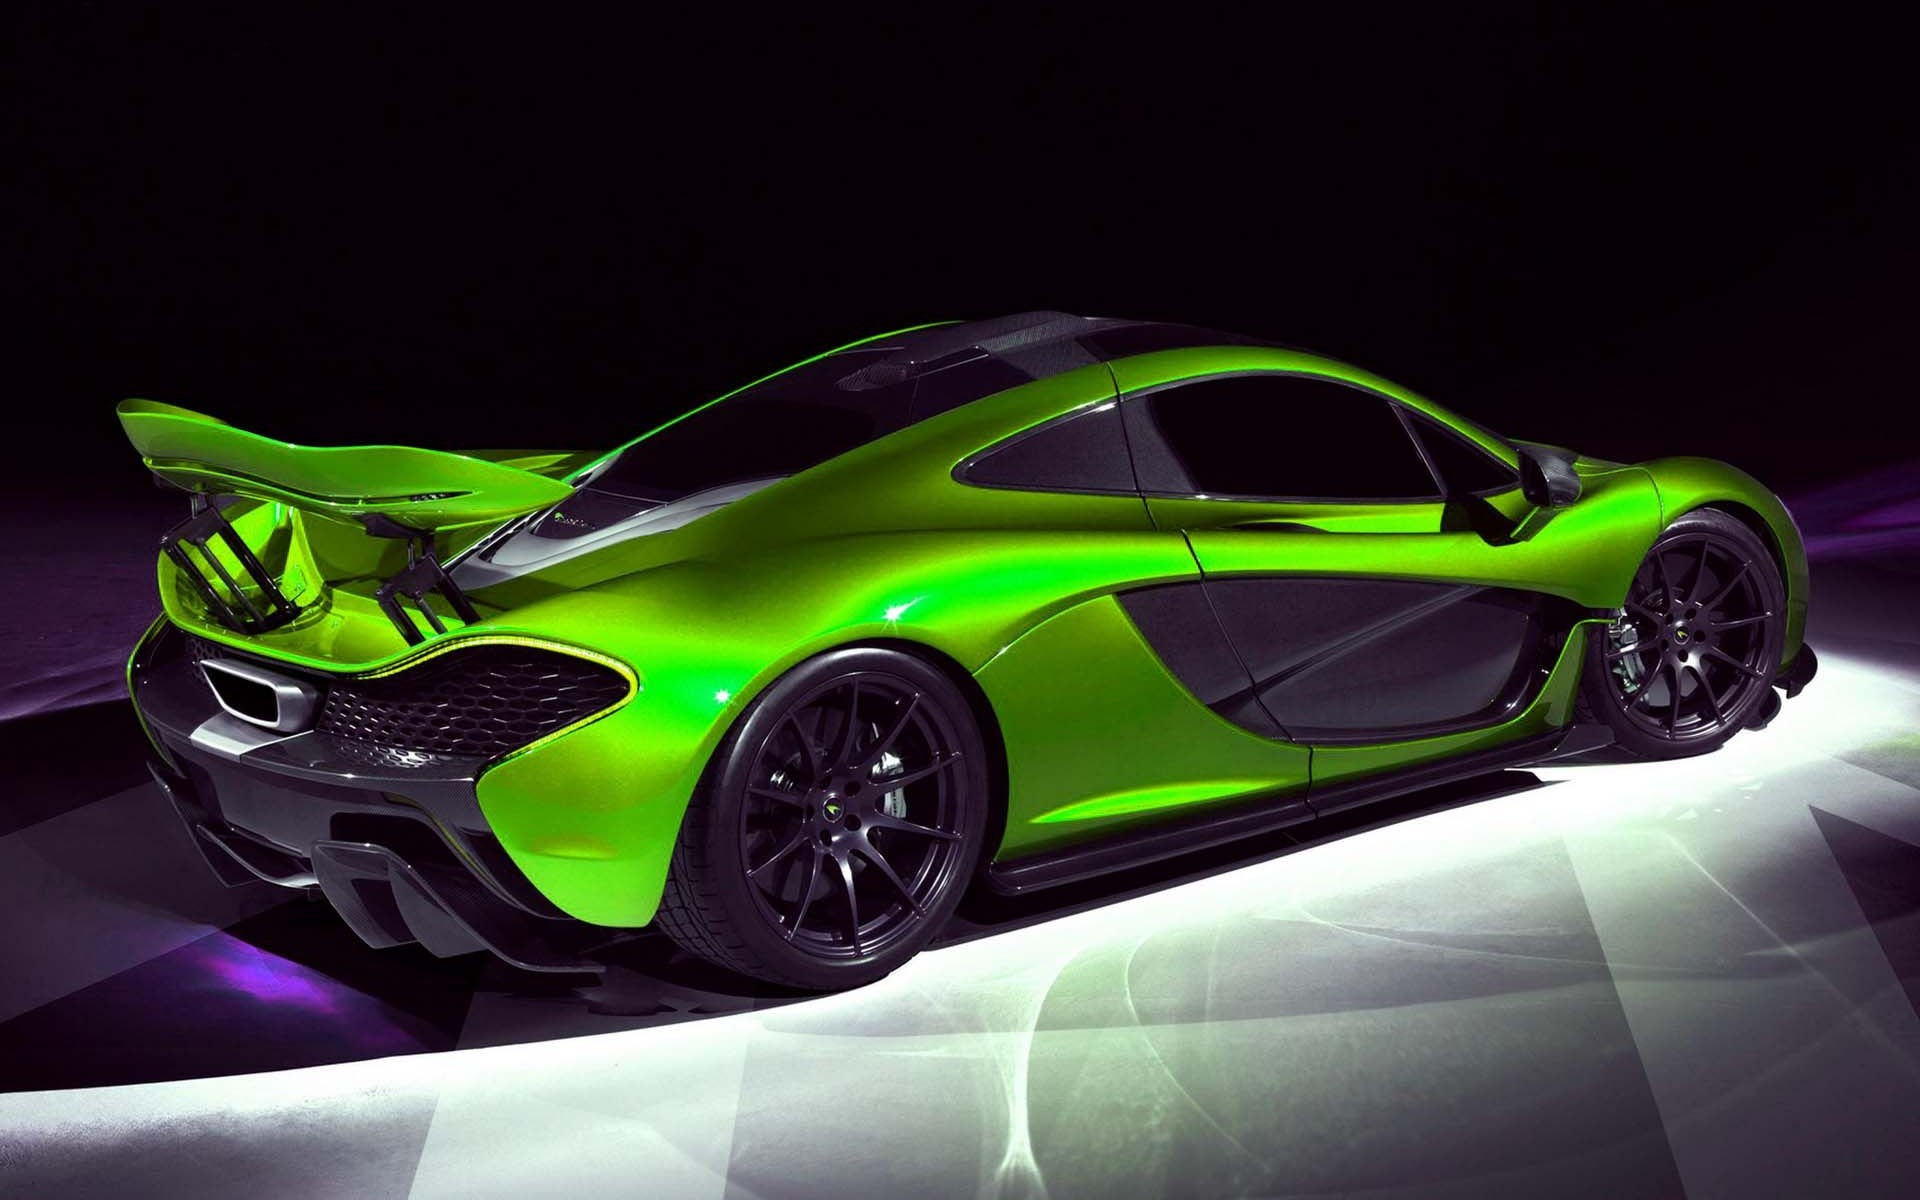 Mclaren P1 Hypercar Green-HD wallpapers